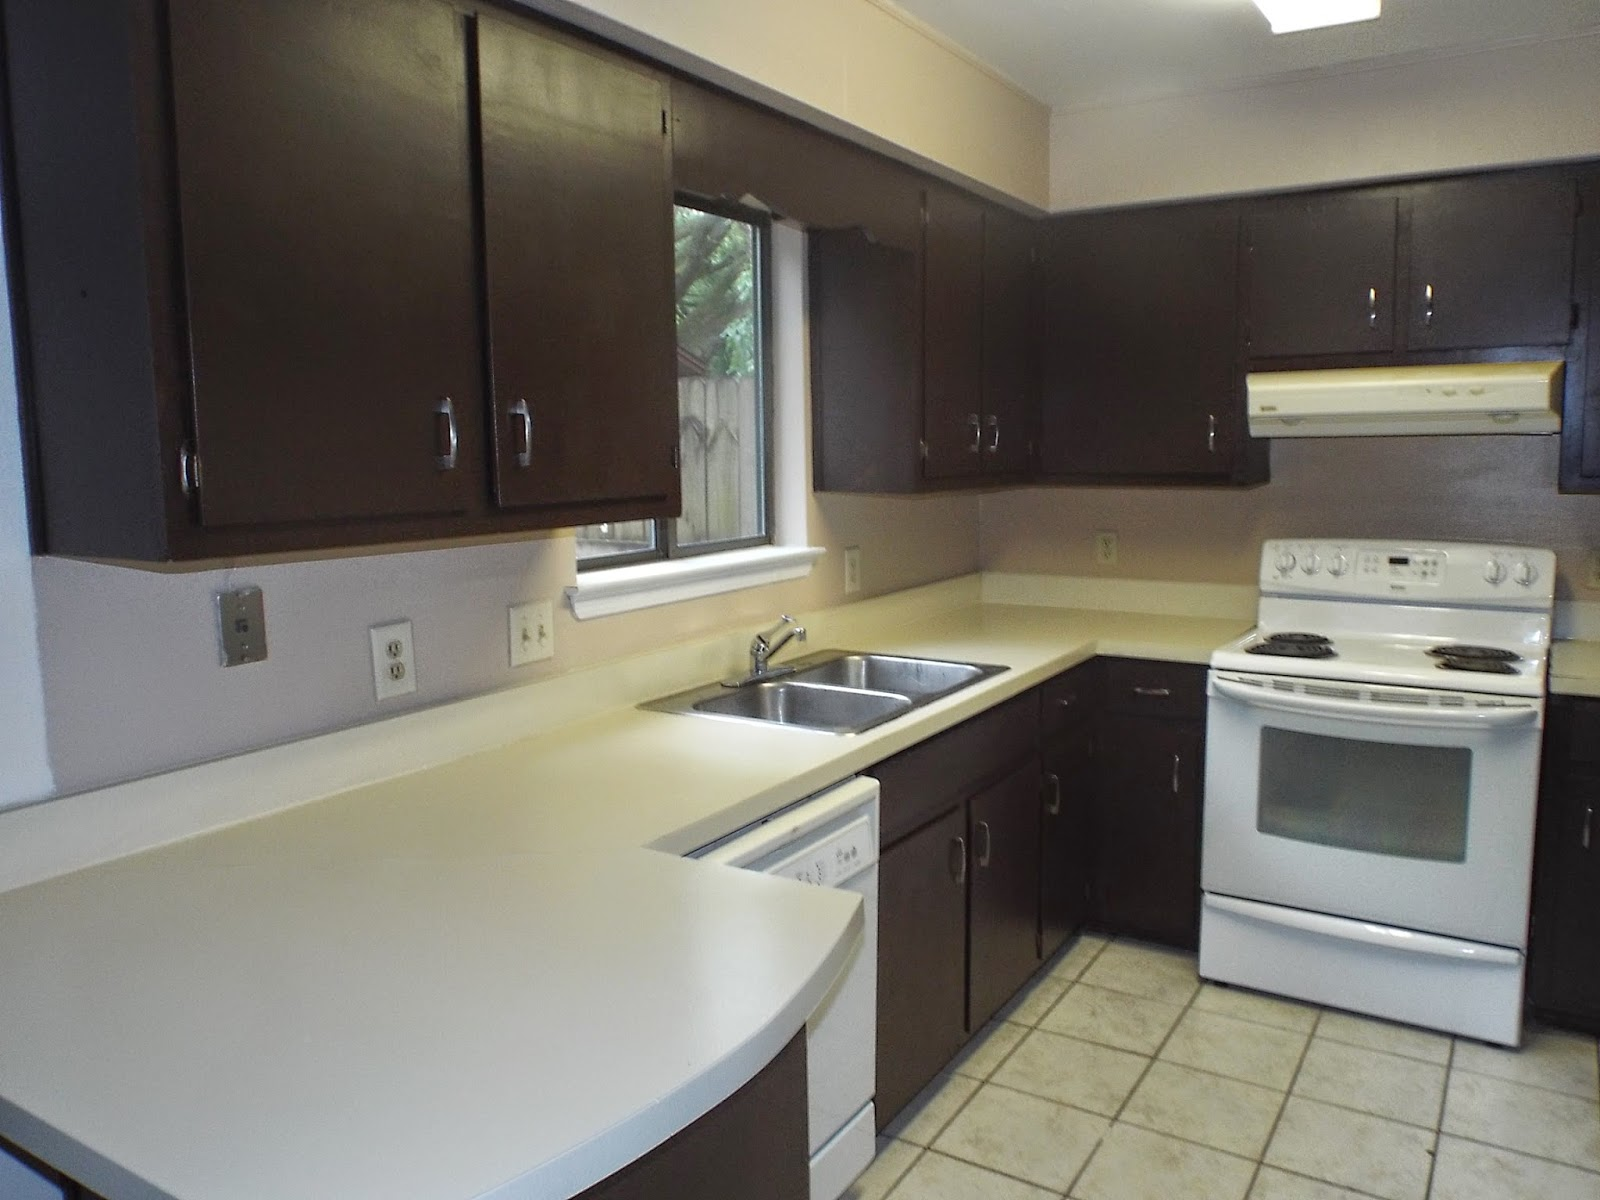 Kitchen duplex remodel After photo~ Pensacola Property Management